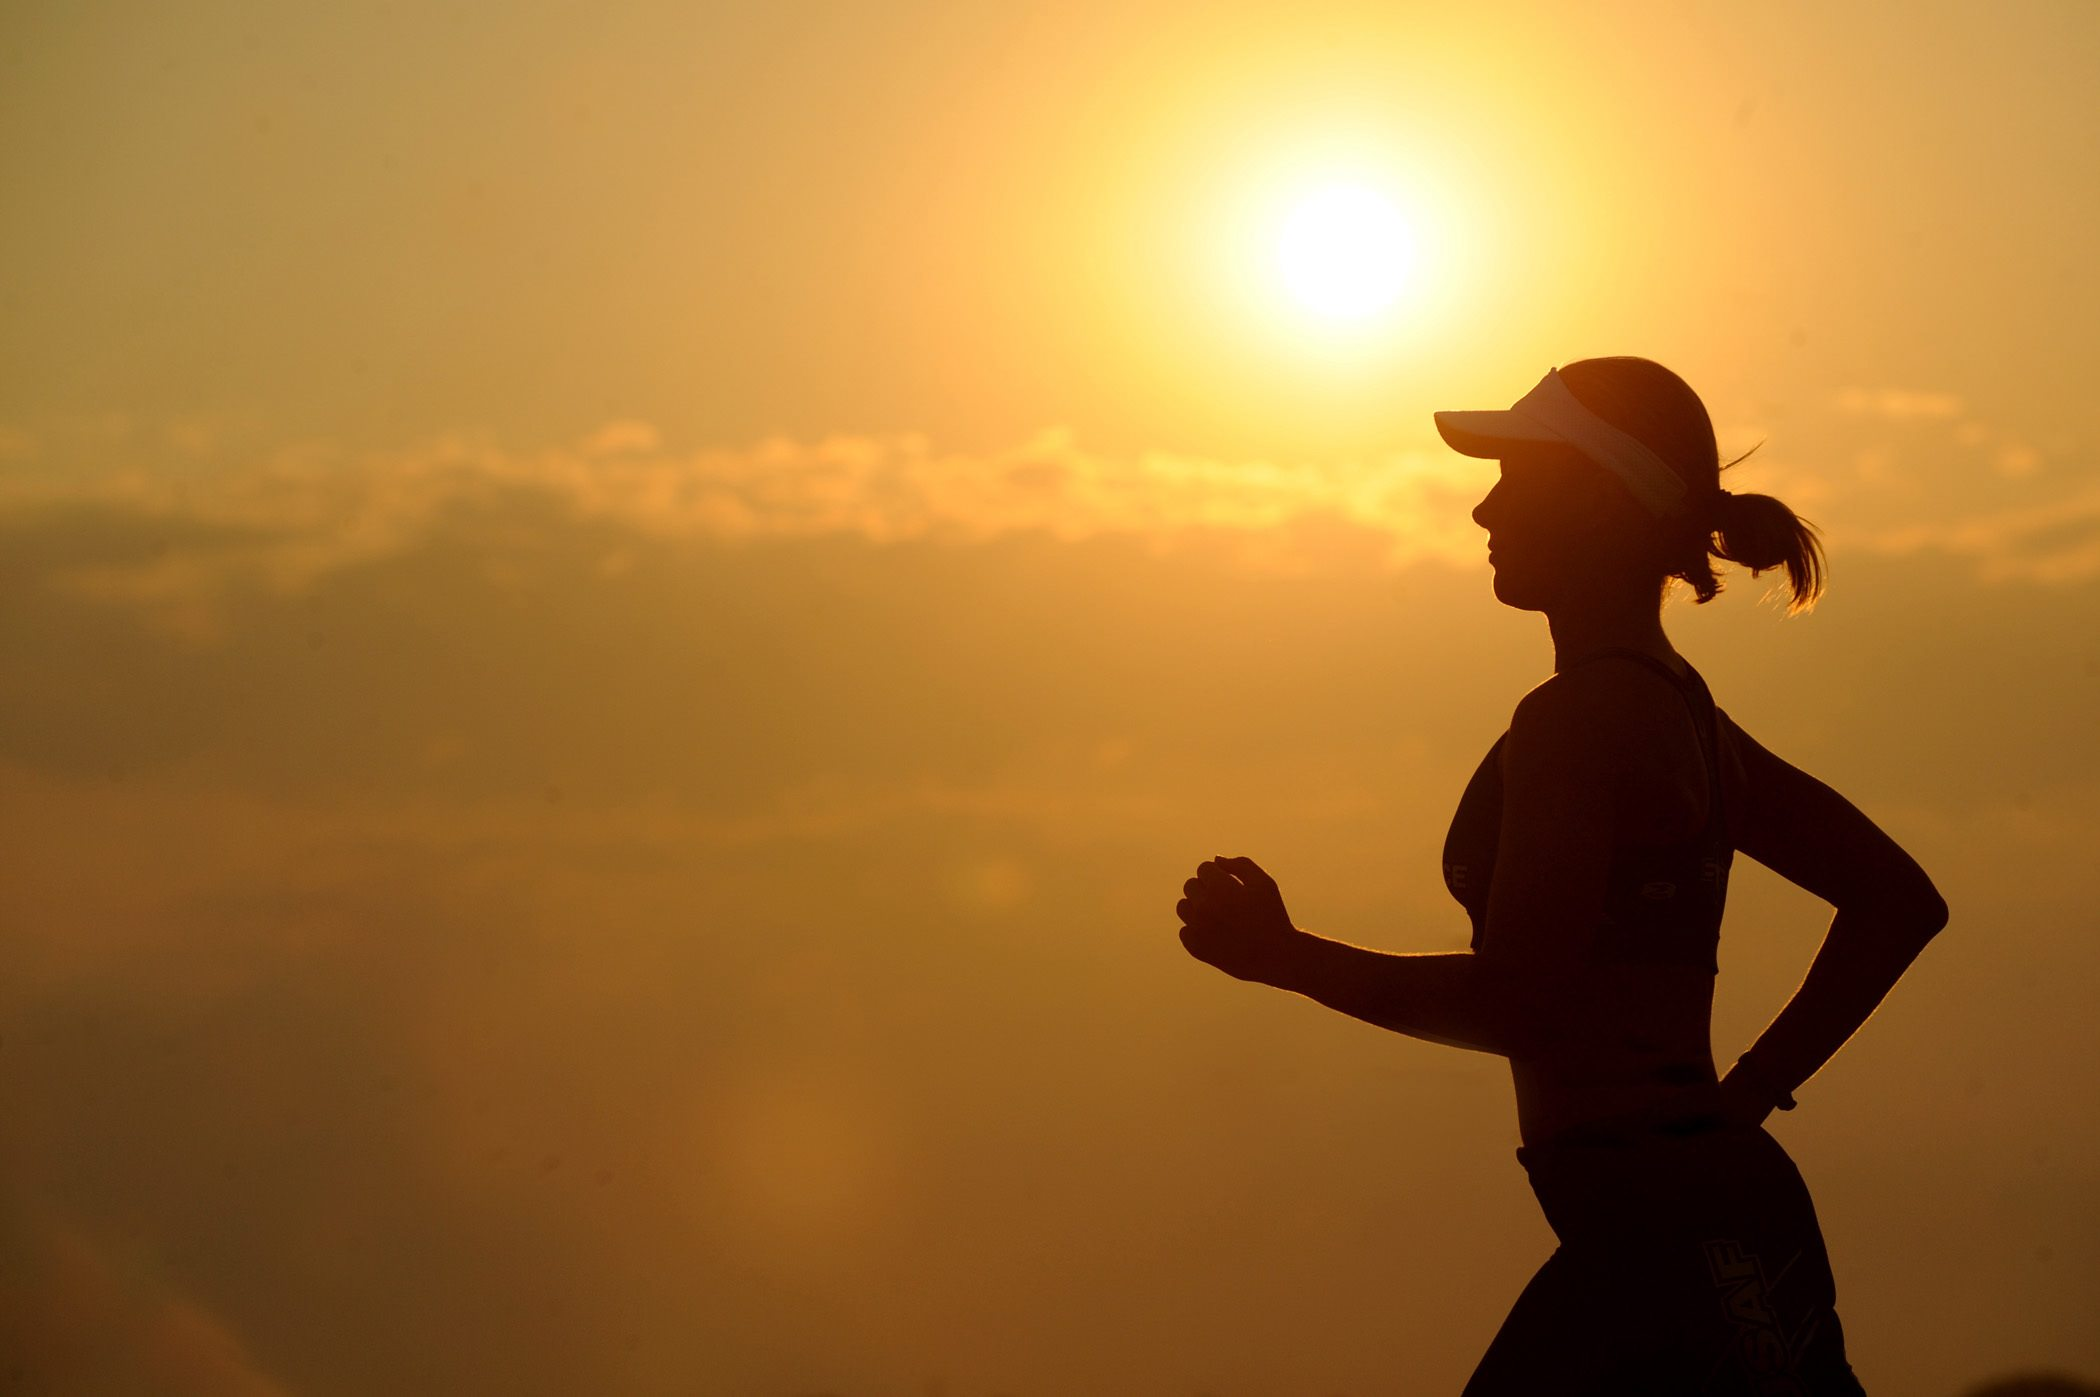 A more mindful and intuitive way of running. Running became a way for me to practice mindfulness through fitness and working out.